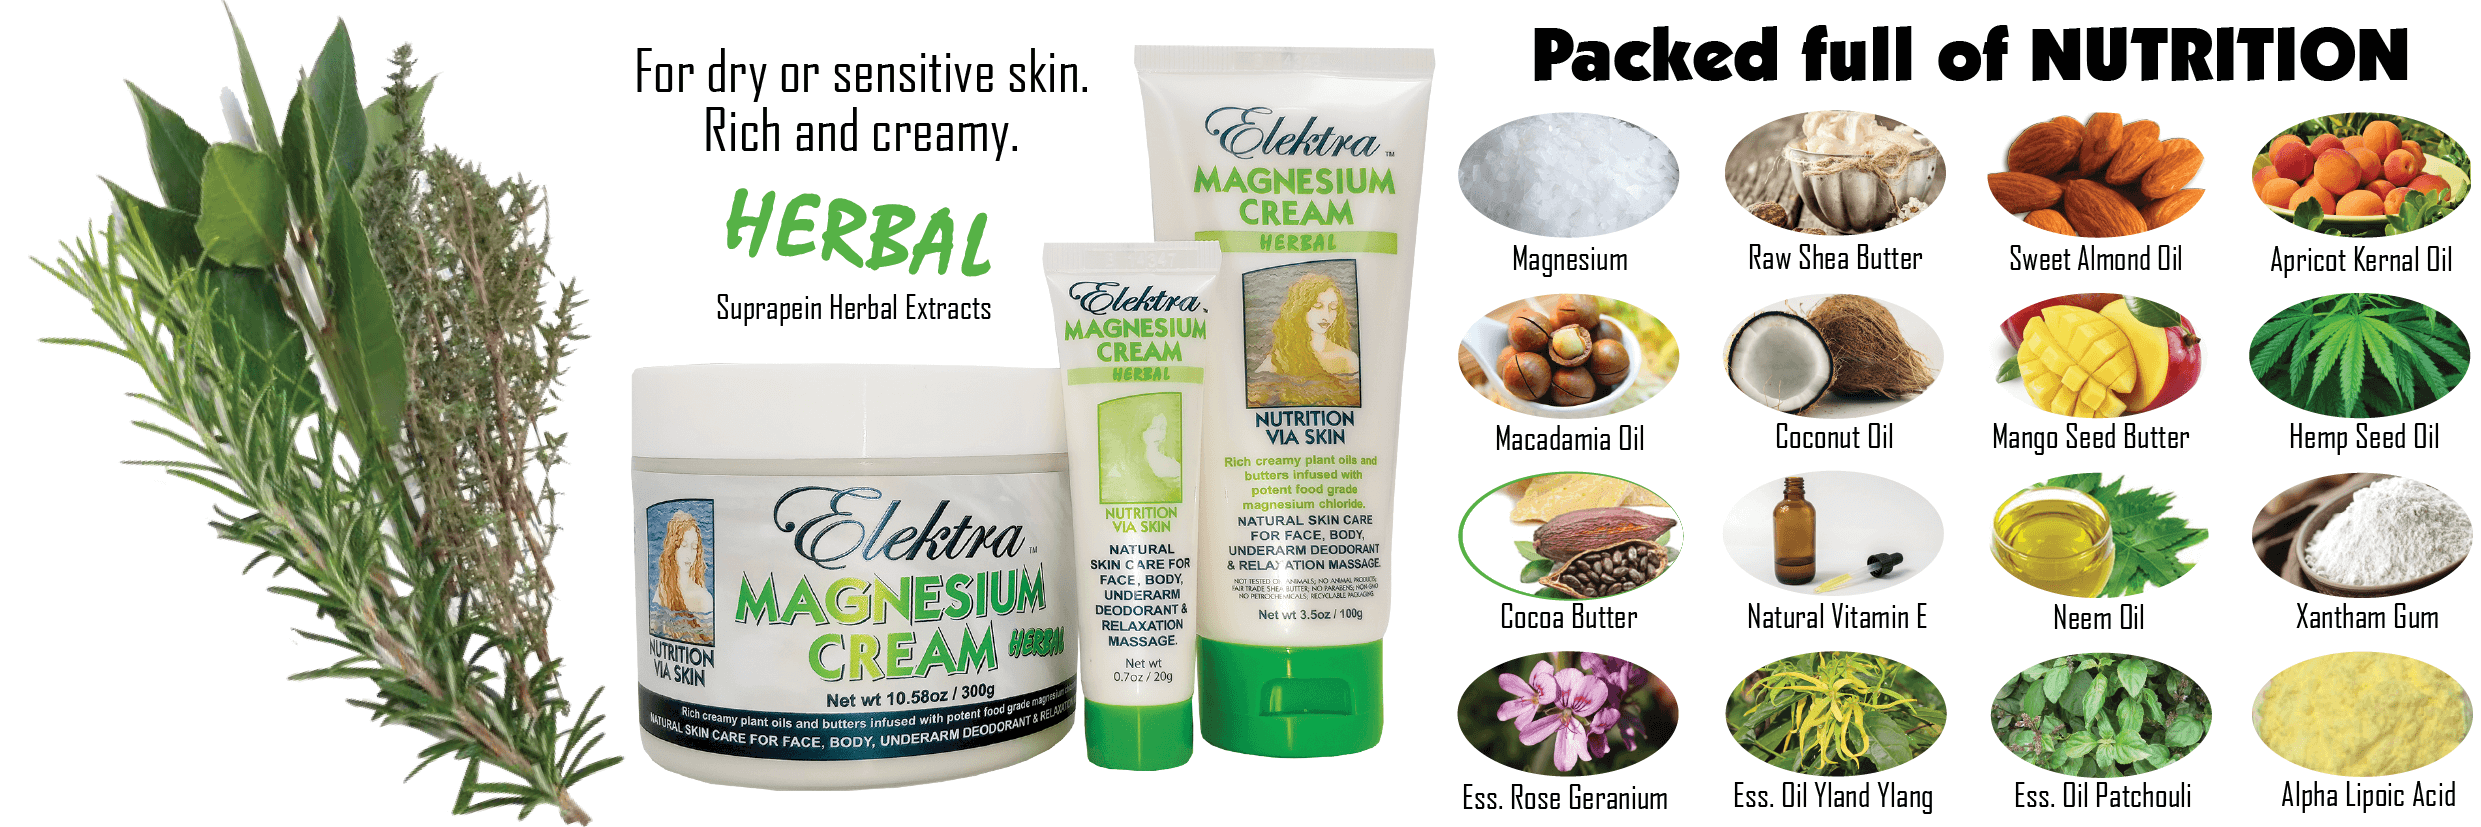 Herbal Magnesium Cream